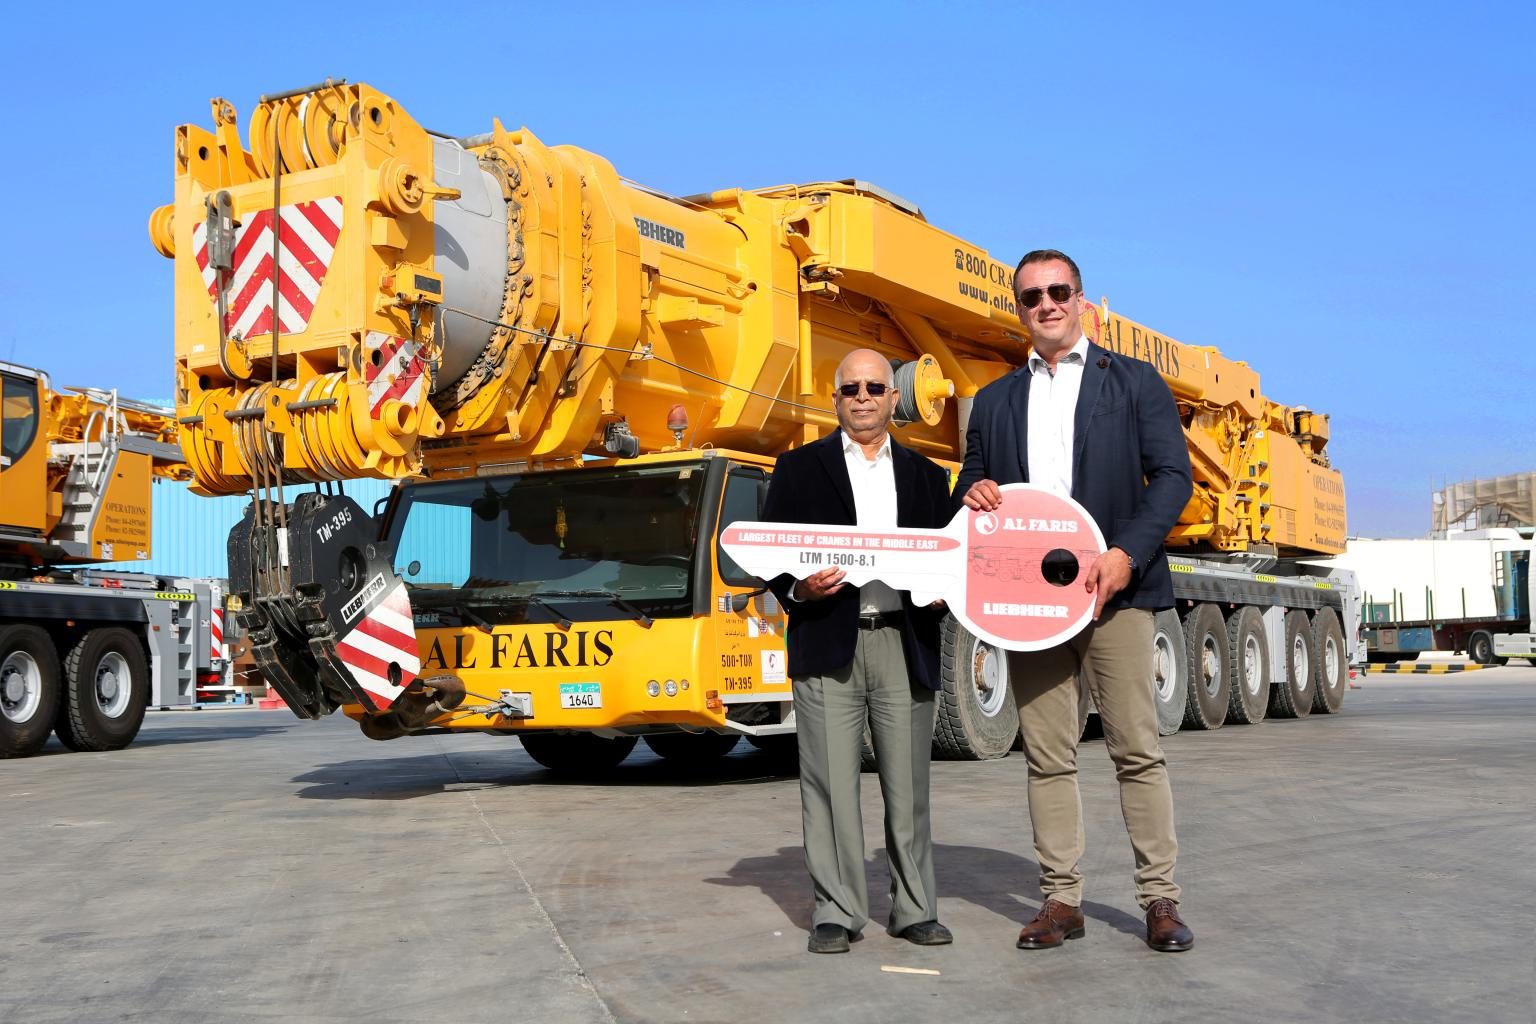 Al Faris received the last manufactured unit of the Liebherr 500t mobile crane